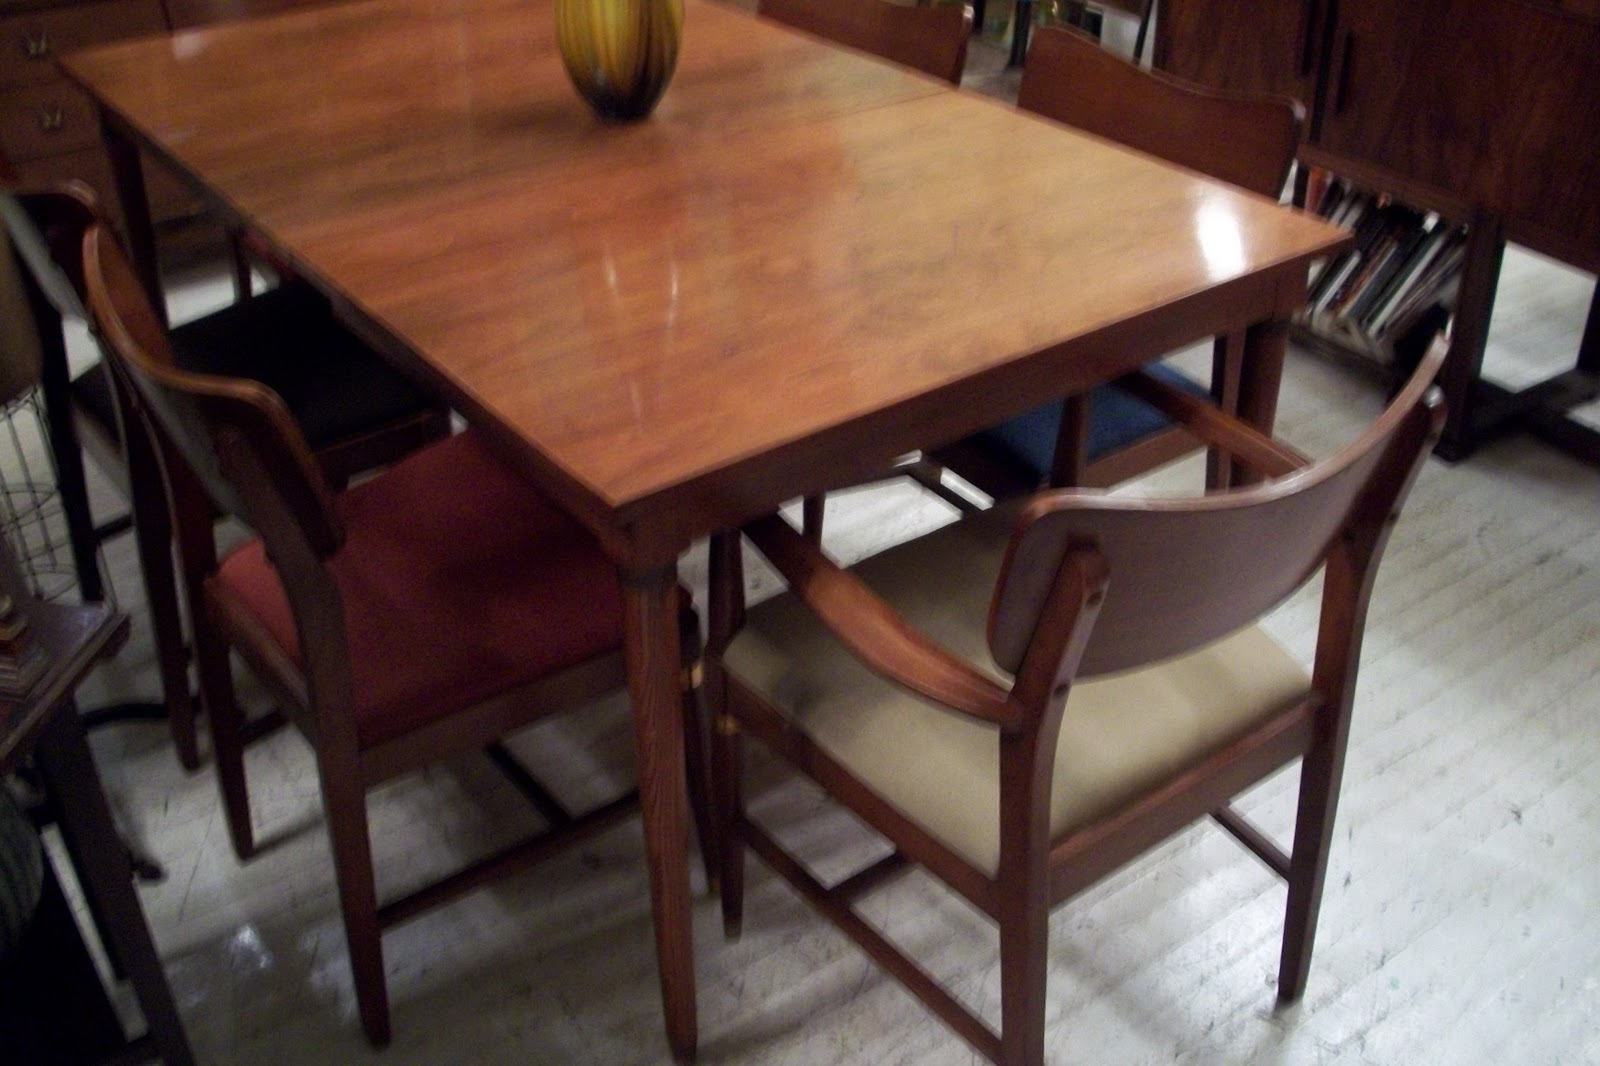 Modern Dining Table And Chairs An Orange Moon Sears And Roebuck Mid Century Modern Dining